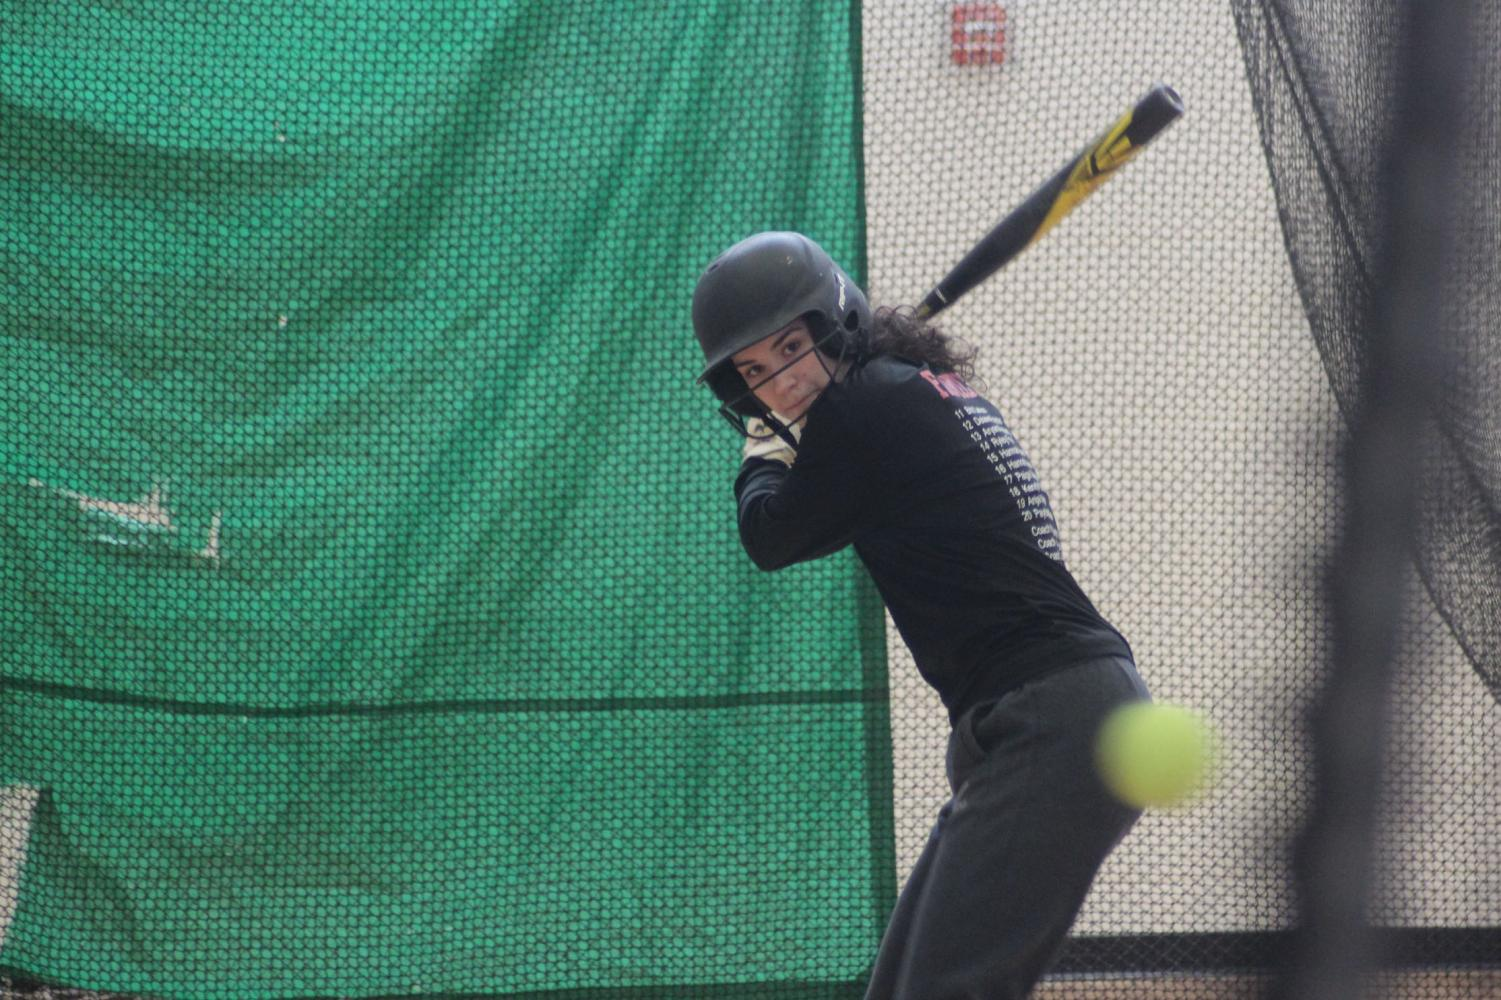 Sophomore Hannah Howell works on hitting technique during Park softball captains practice Mar. 3rd. Tryouts will begin Mar. 11th after school in the old gym.